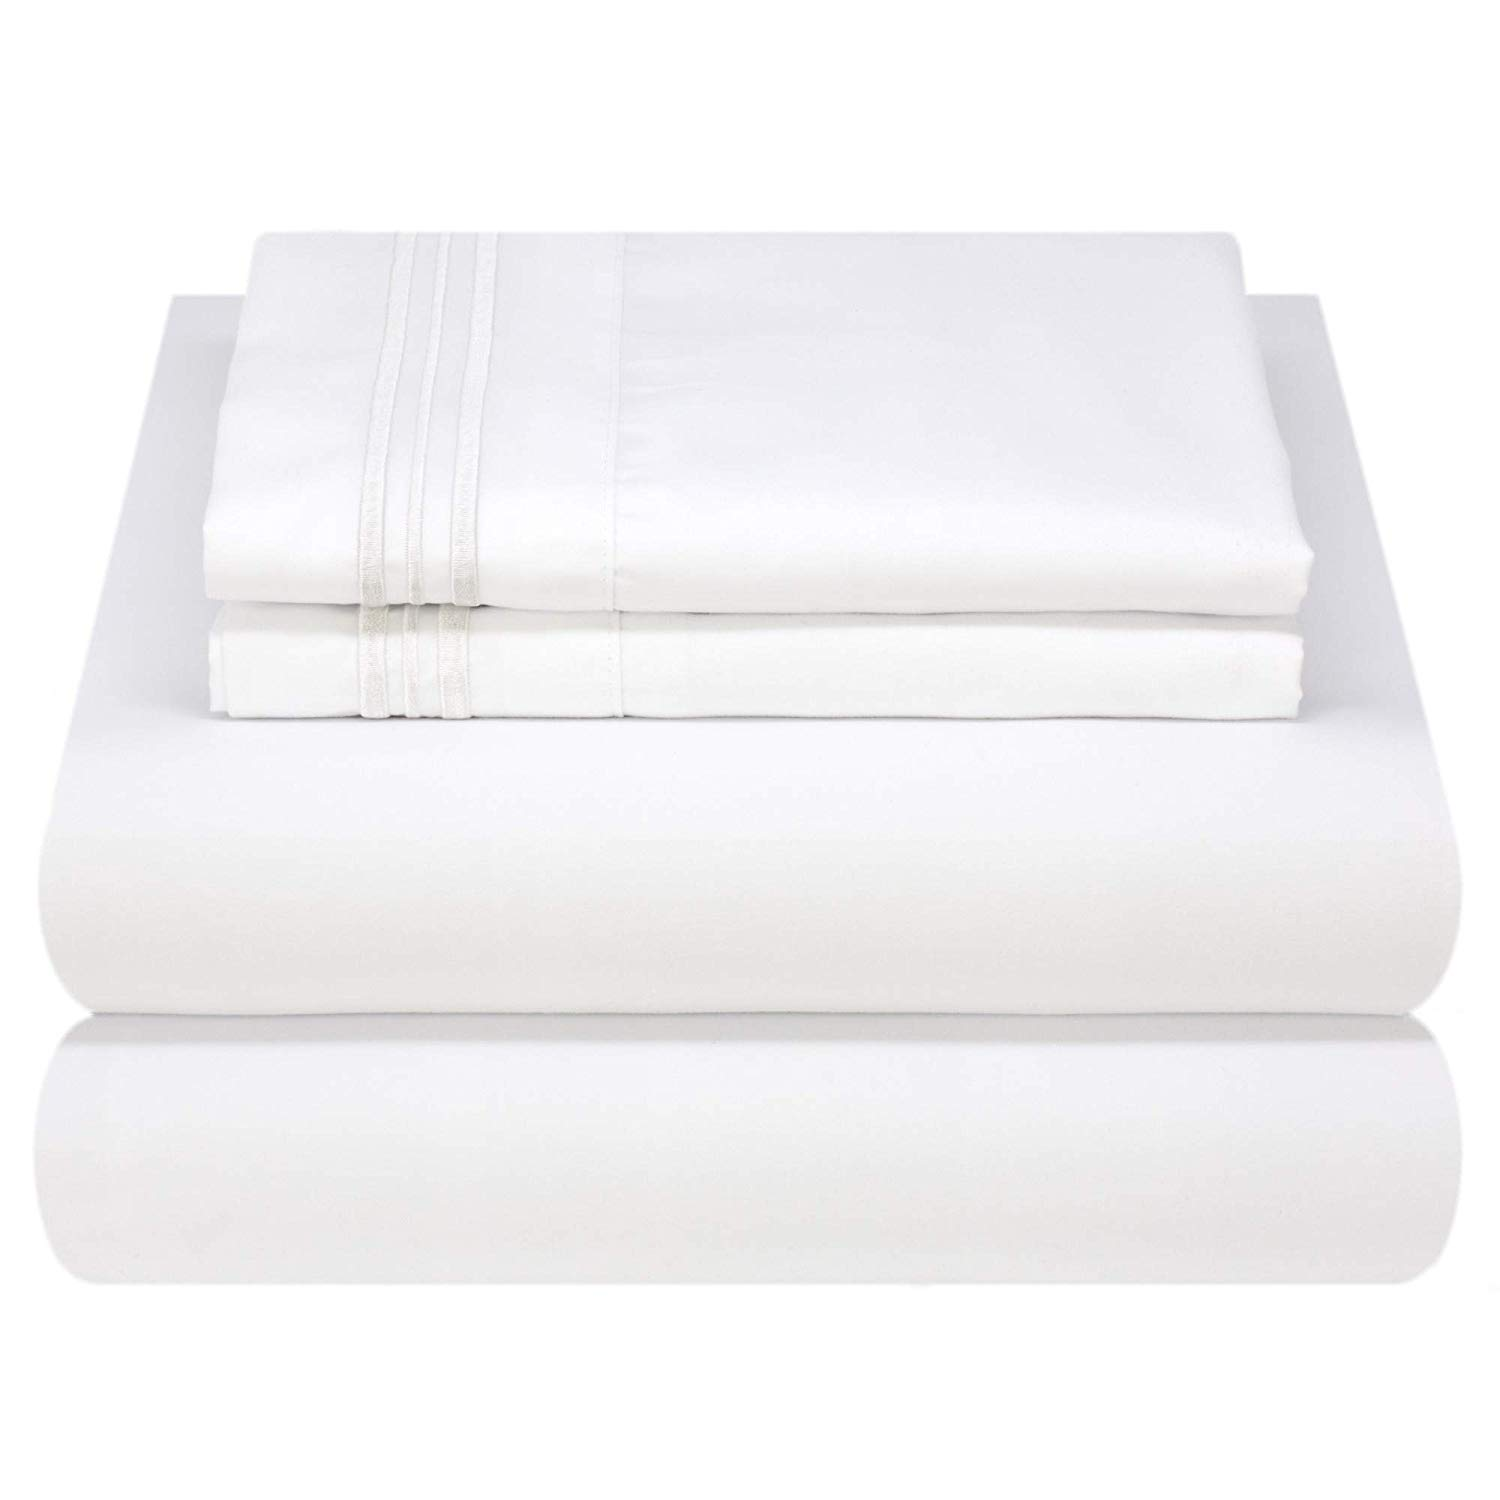 Mezzati Microfiber vs. Cotton Sheets Review by www.snoremagazine.com